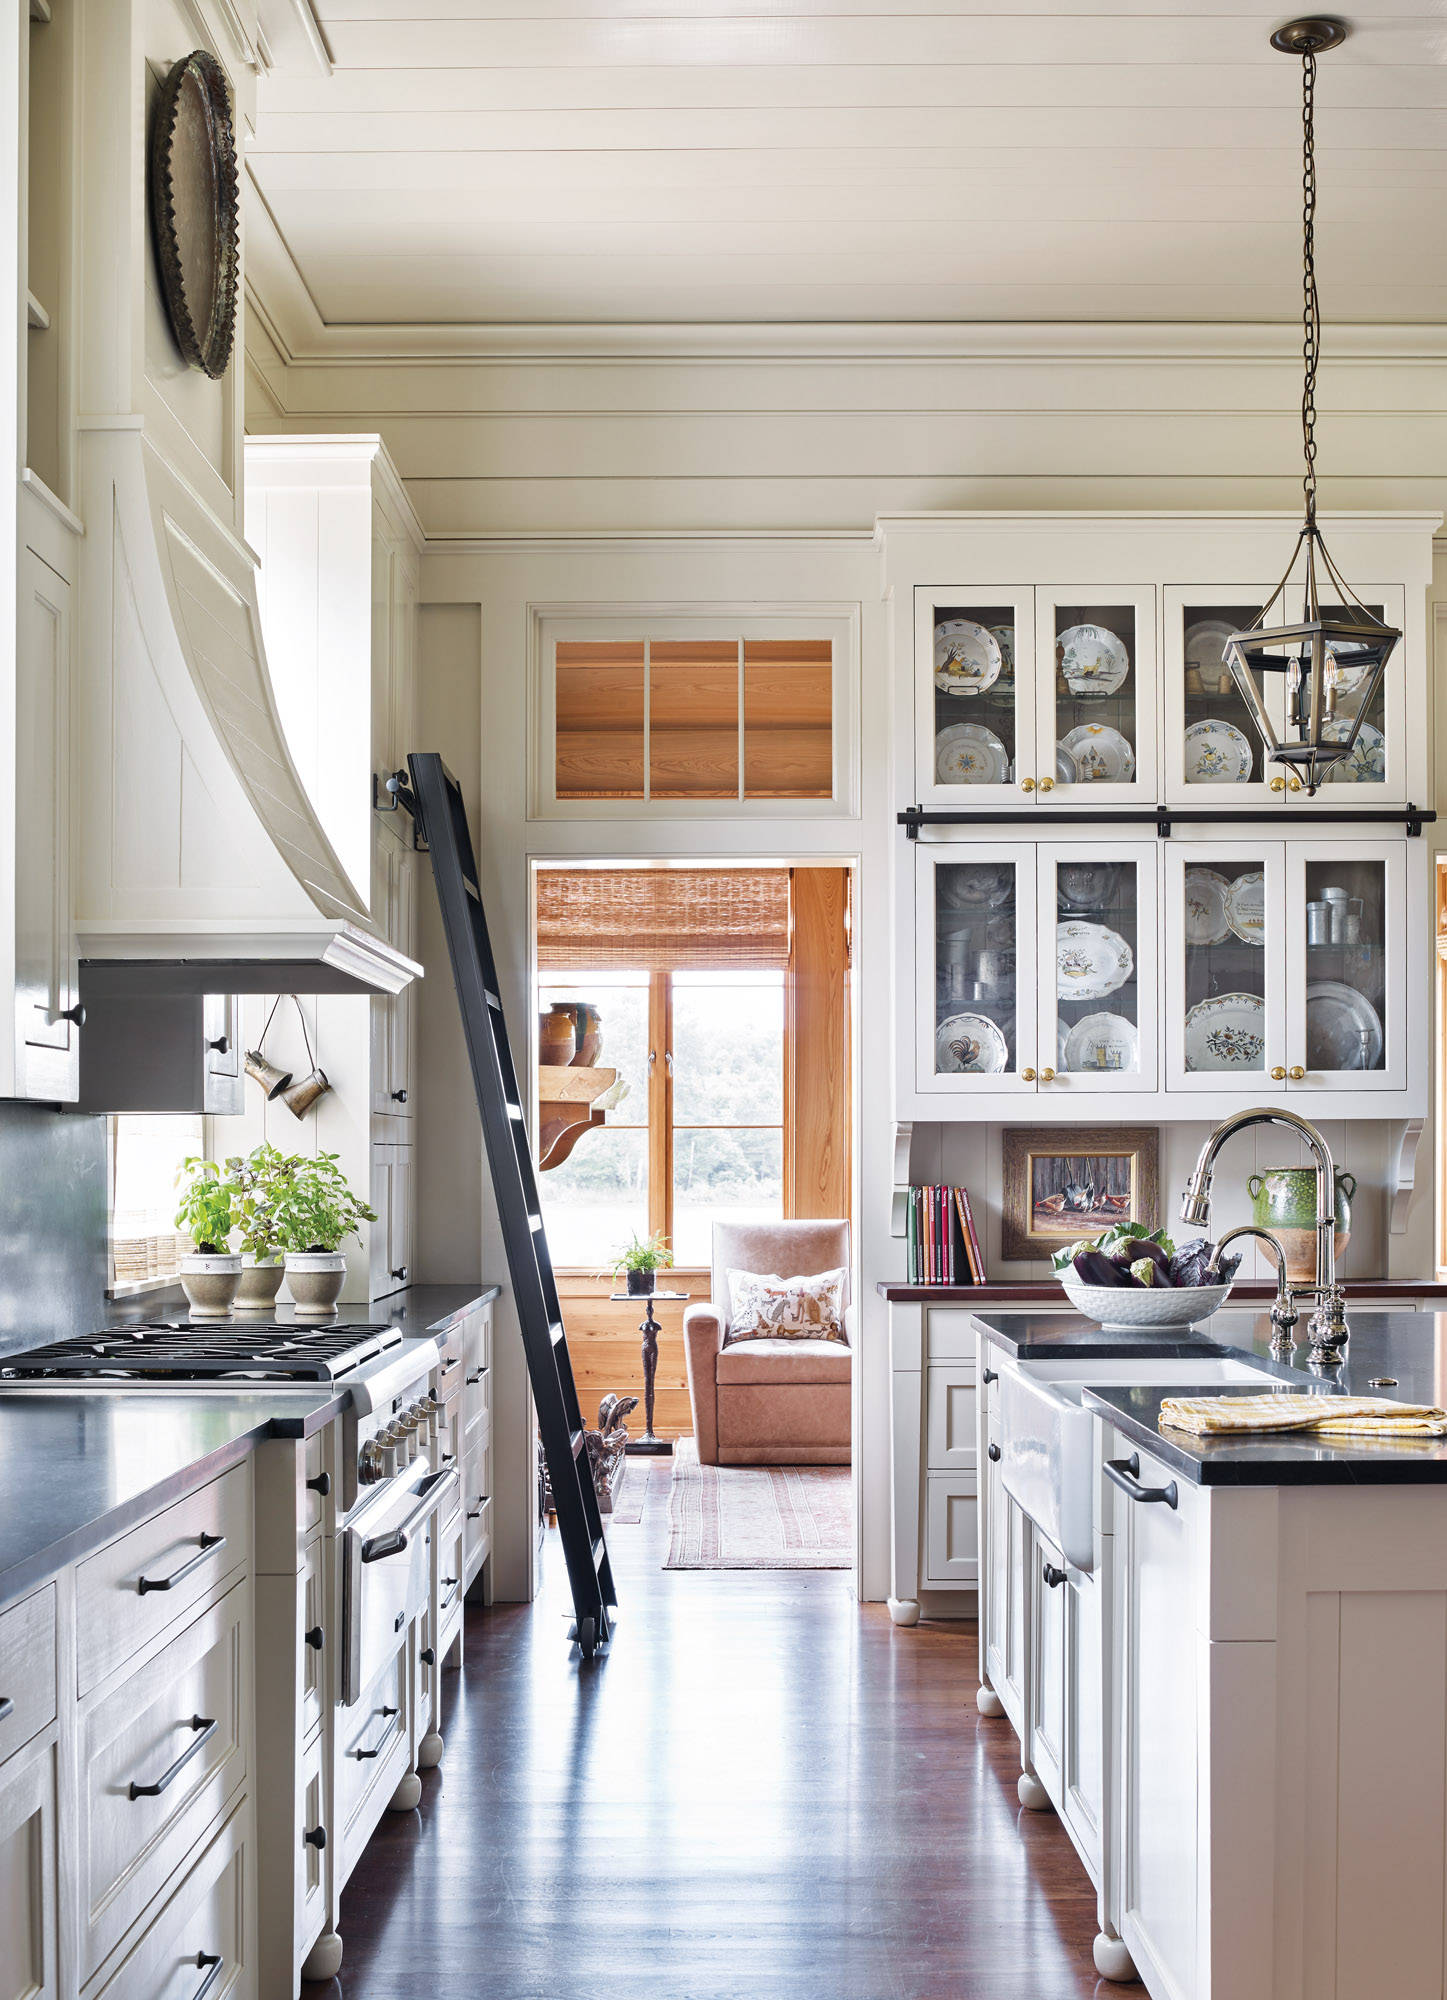 The main kitchen has cabinets reminiscent of a butler's pantry, with closed and display storage that stacks almost to the ceiling. A separate pantry can be opened for extra prep space.